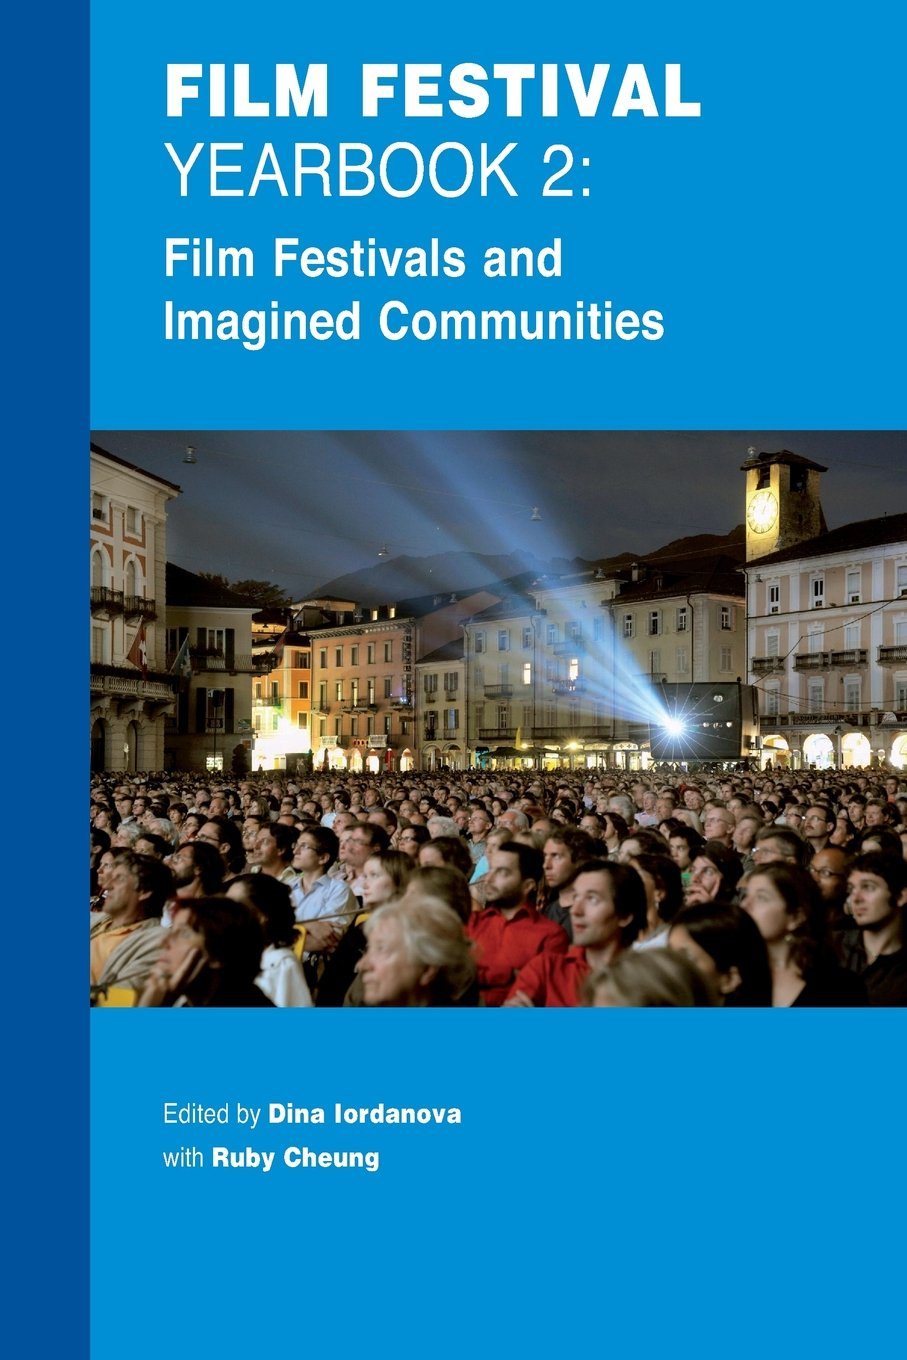 Download Film Festival Yearbook 2: Film Festivals and Imagined Communities (REF: APLG-FFYB10) ebook